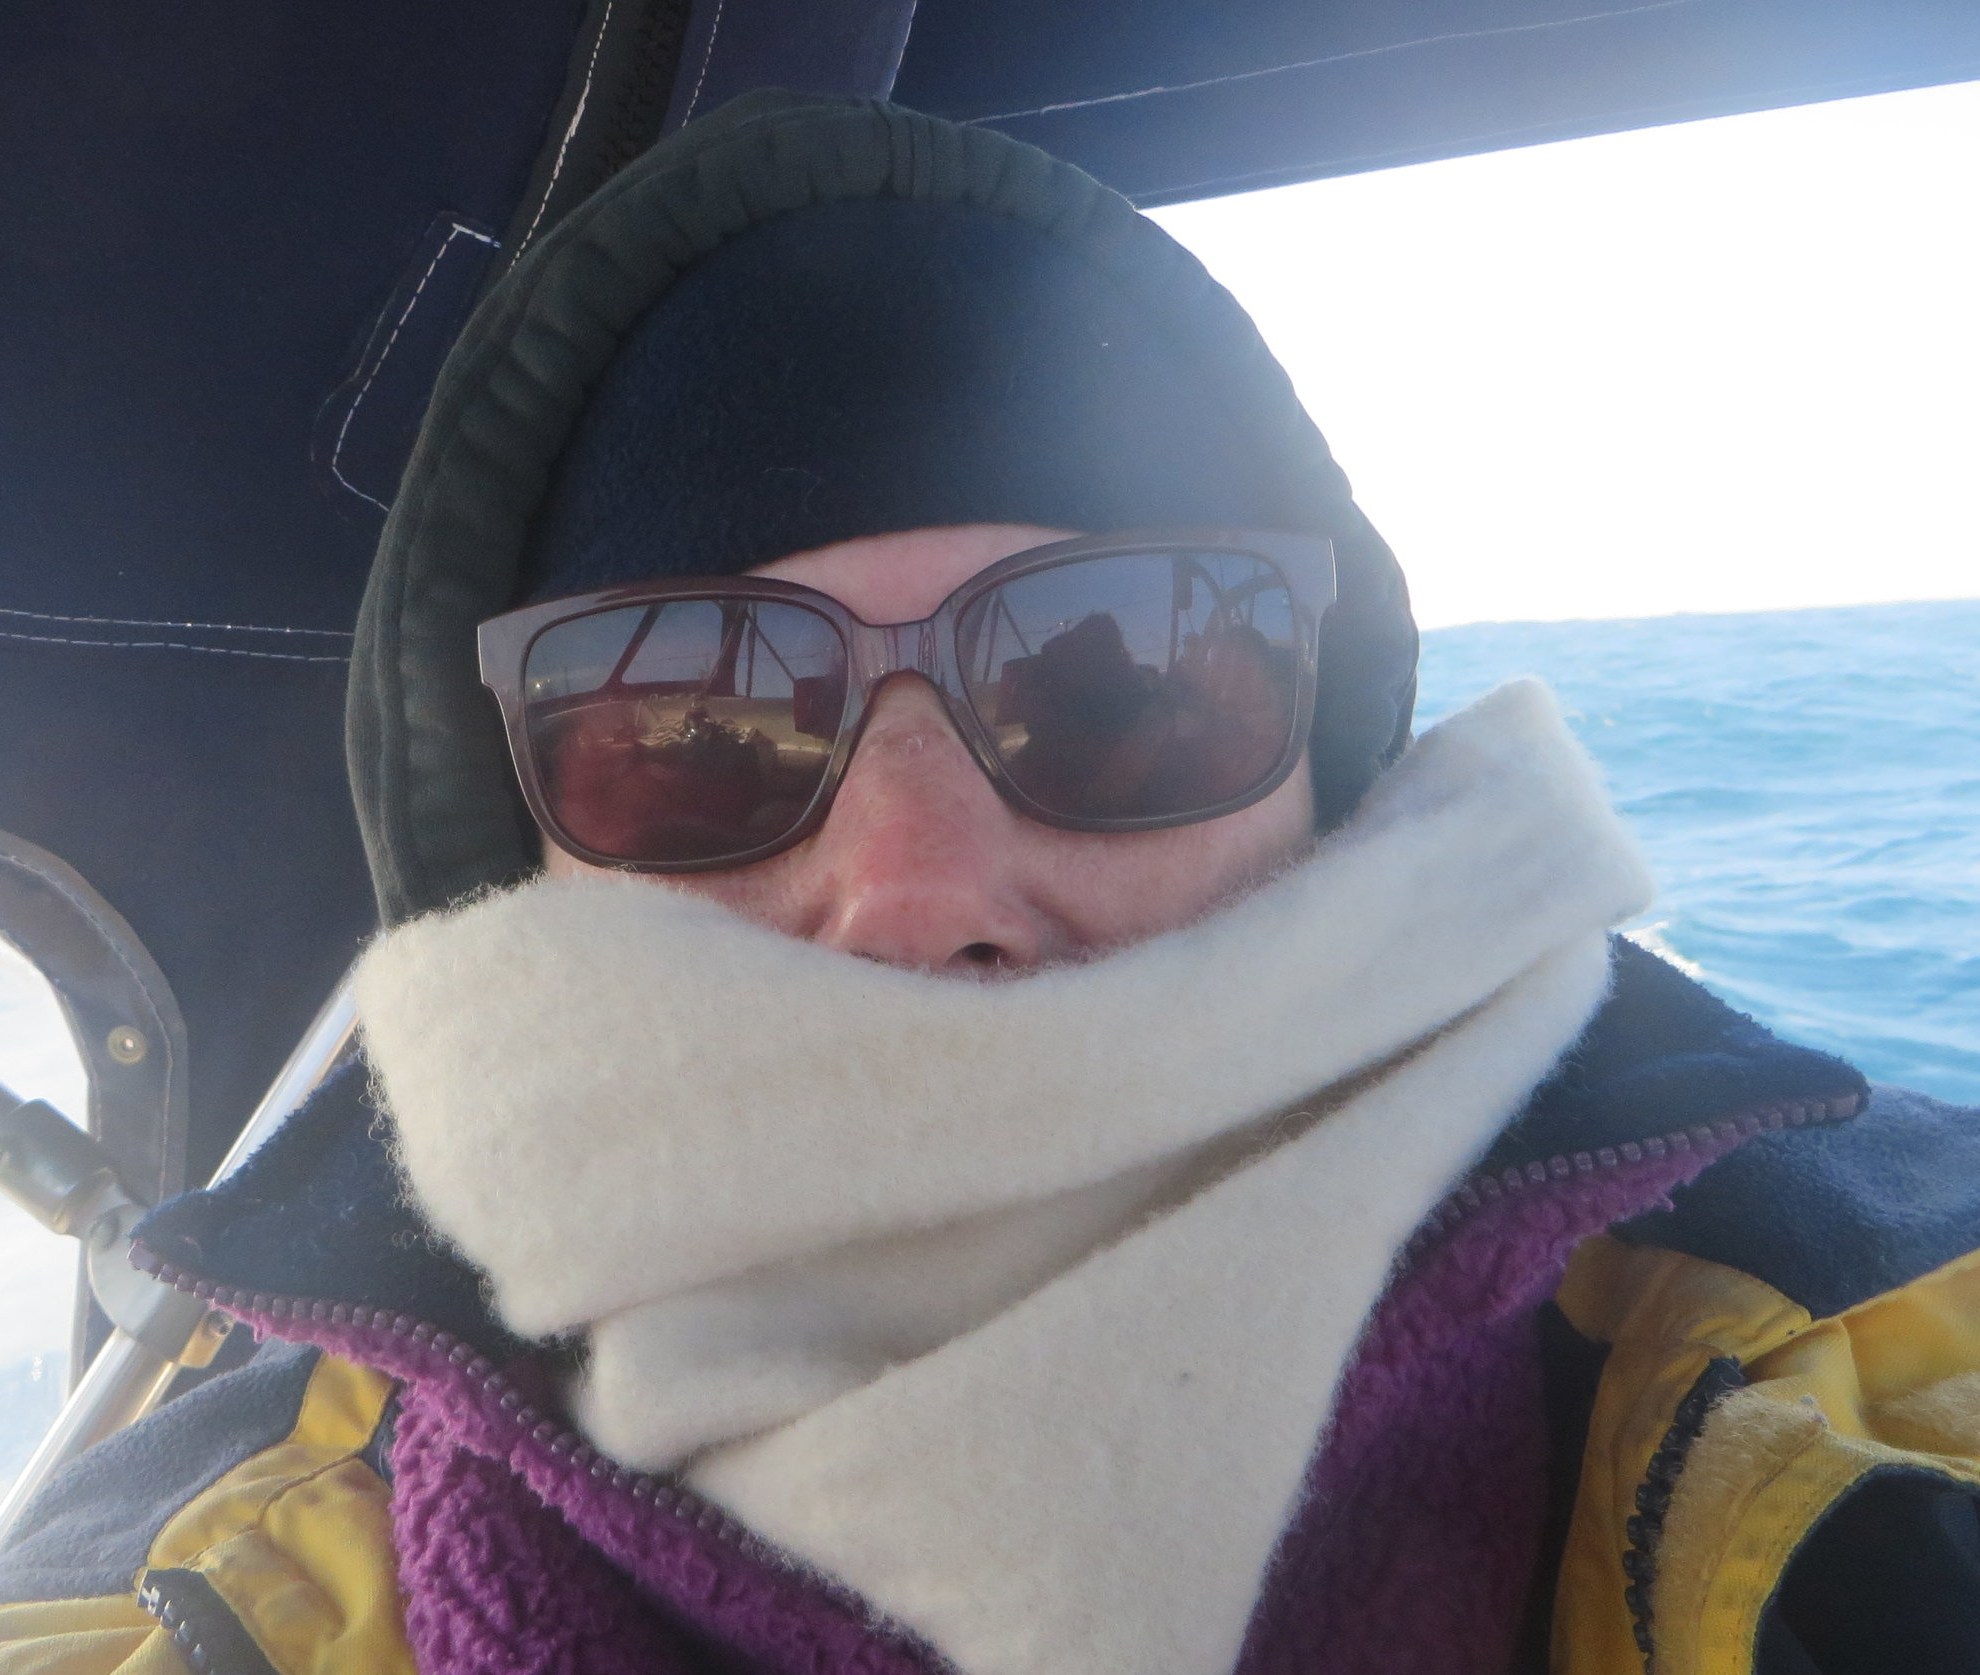 The passage from Namibia to St. Helena Island was cold and raw. Shivering selfie at sea!